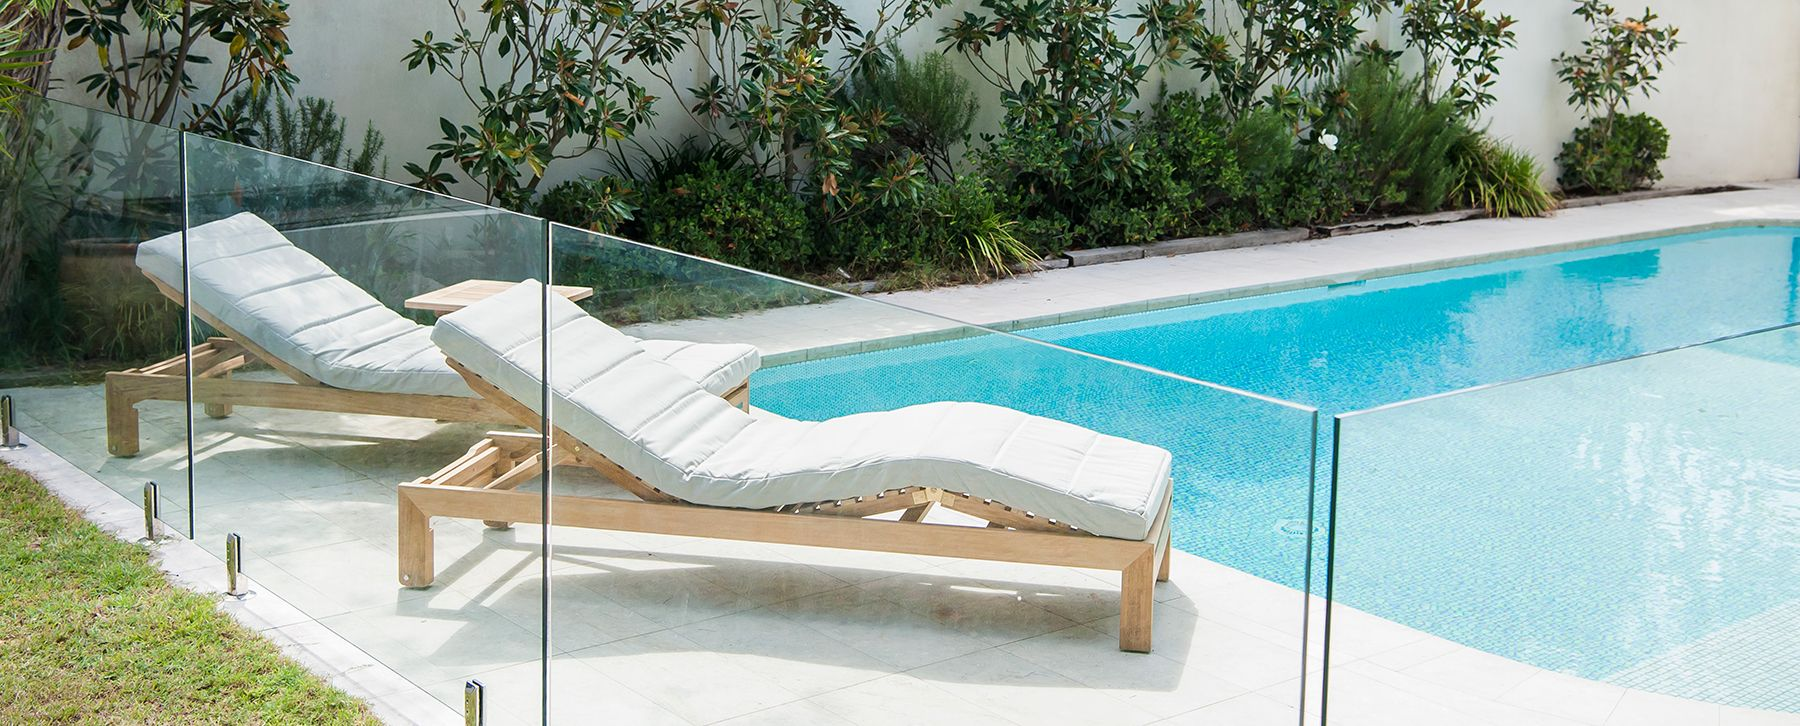 Asure chaise lounger stellar couture outdoor for Garden pool loungers